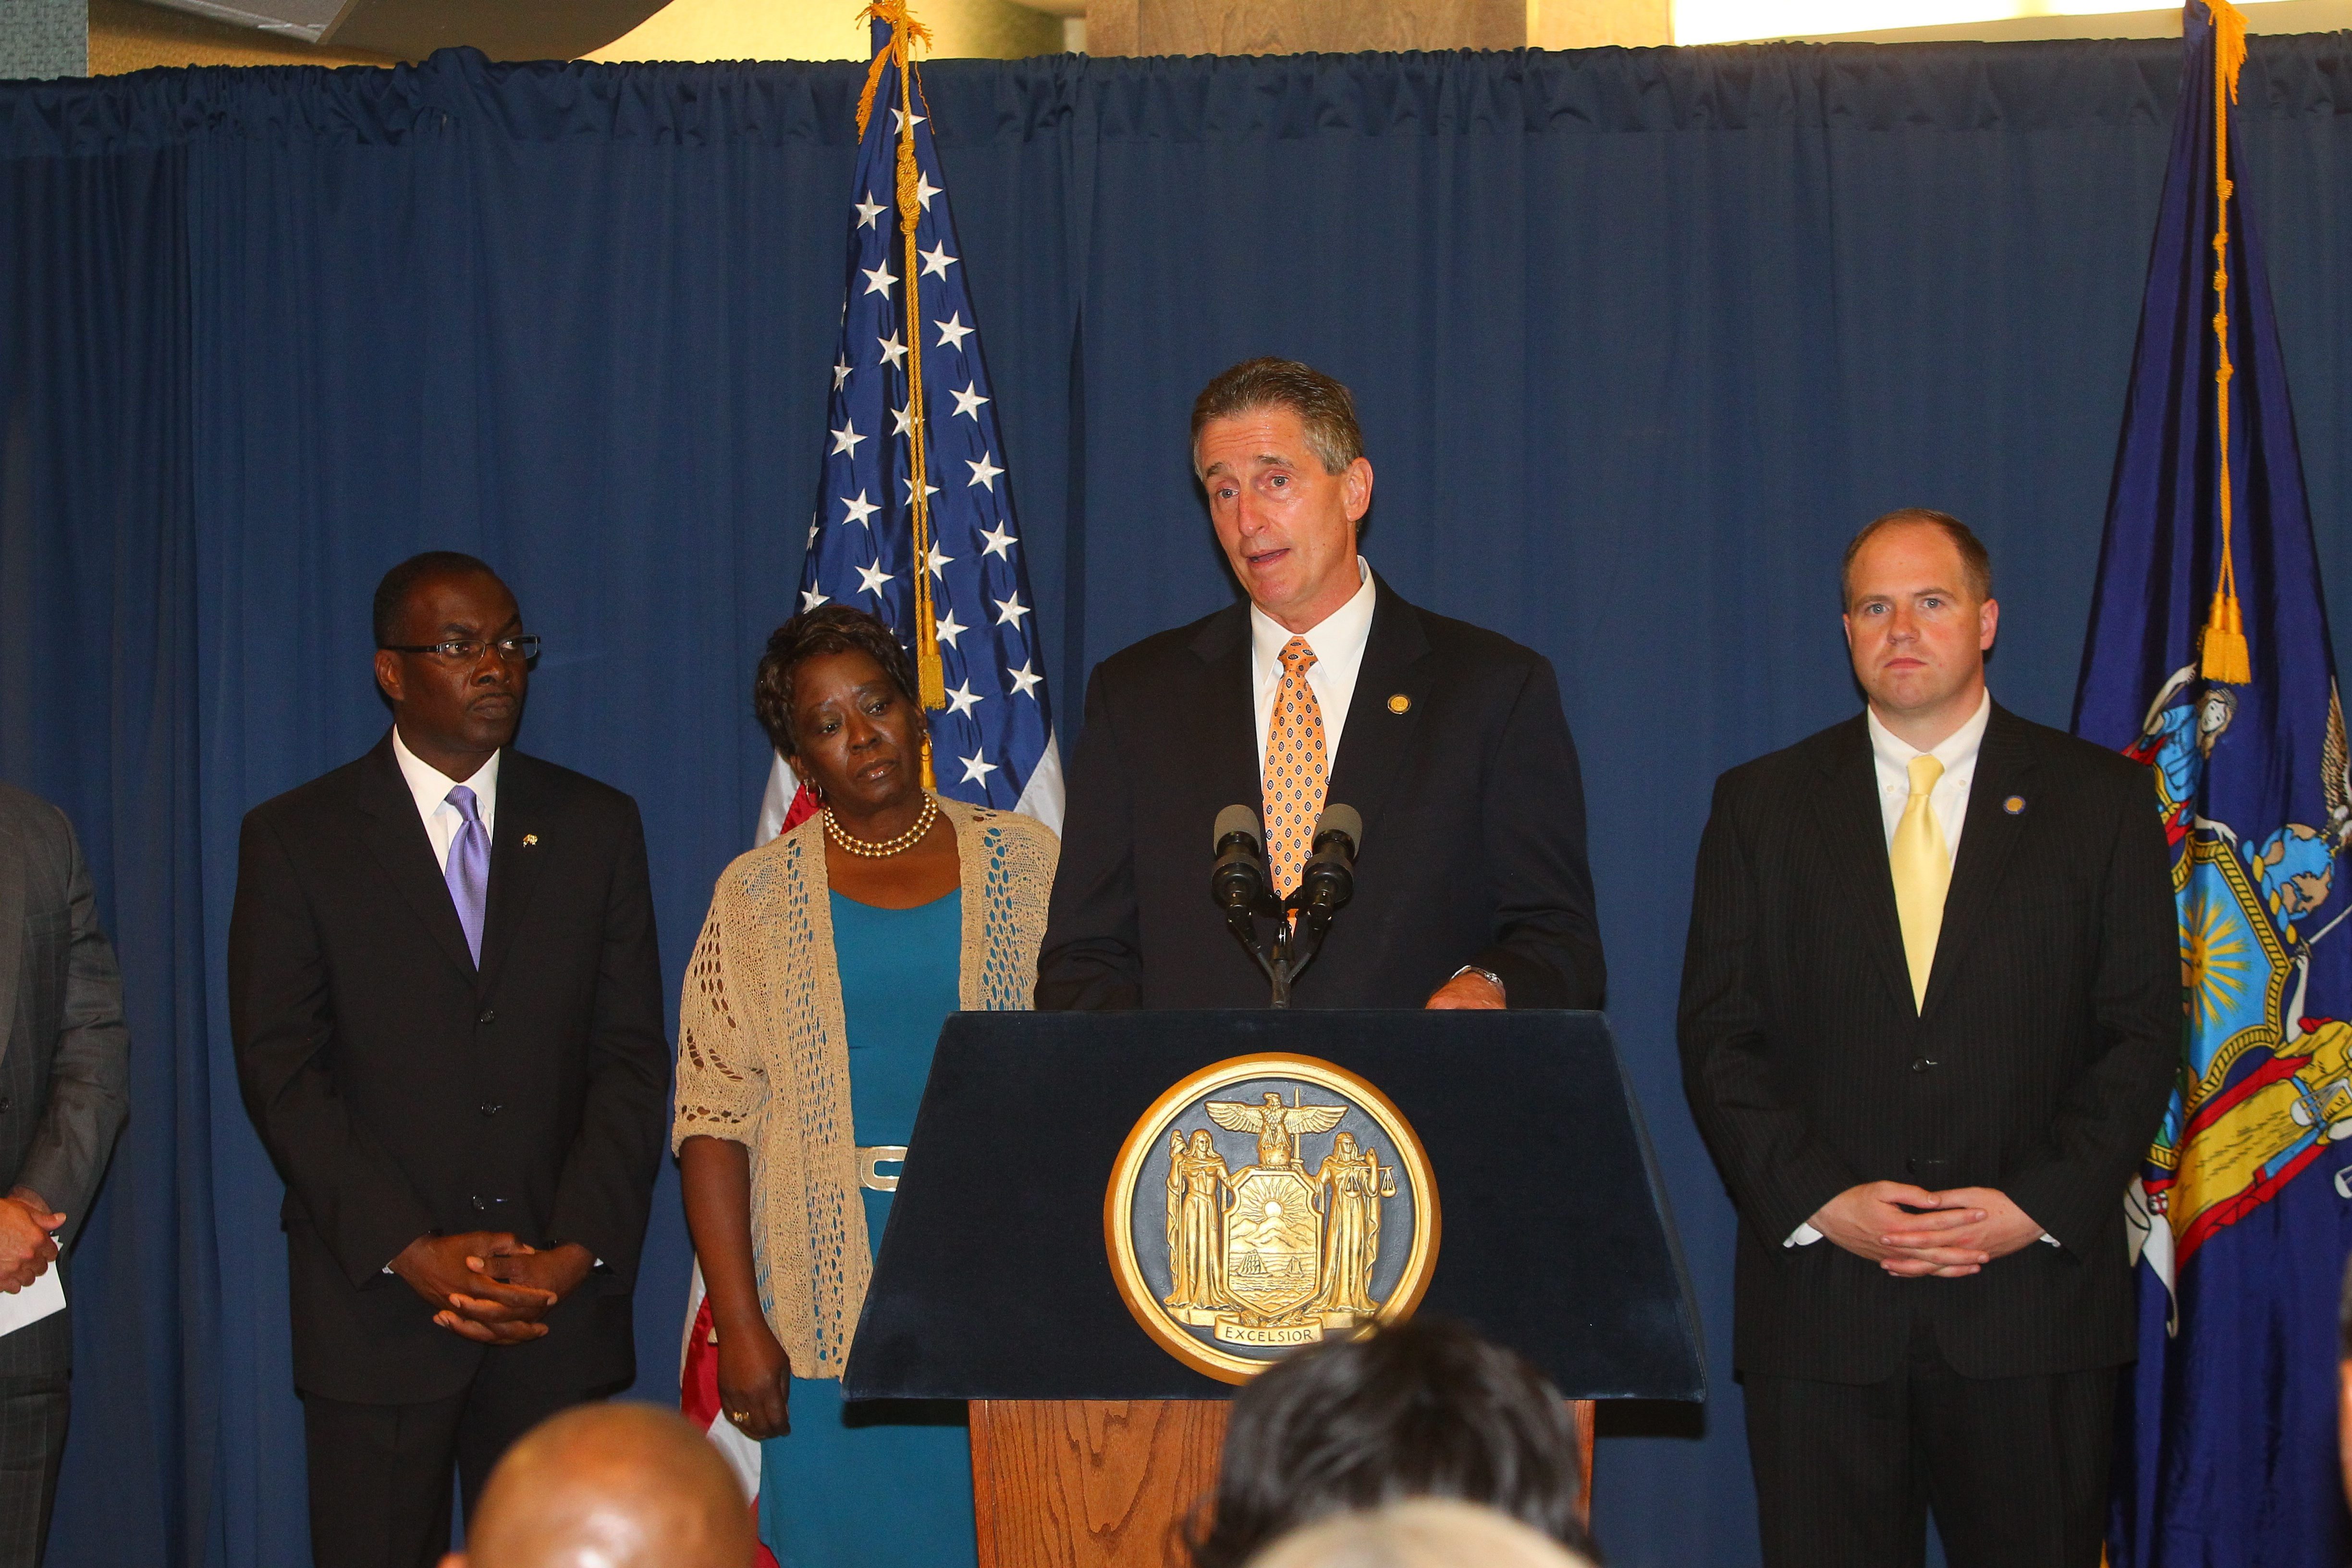 From left, Buffalo Mayor Byron W. Brown, Assemblywoman Crystal Peoples-Stokes, Lt. Gov. Robert Duffy and State Sen. Tim Kennedy attended the announcement.